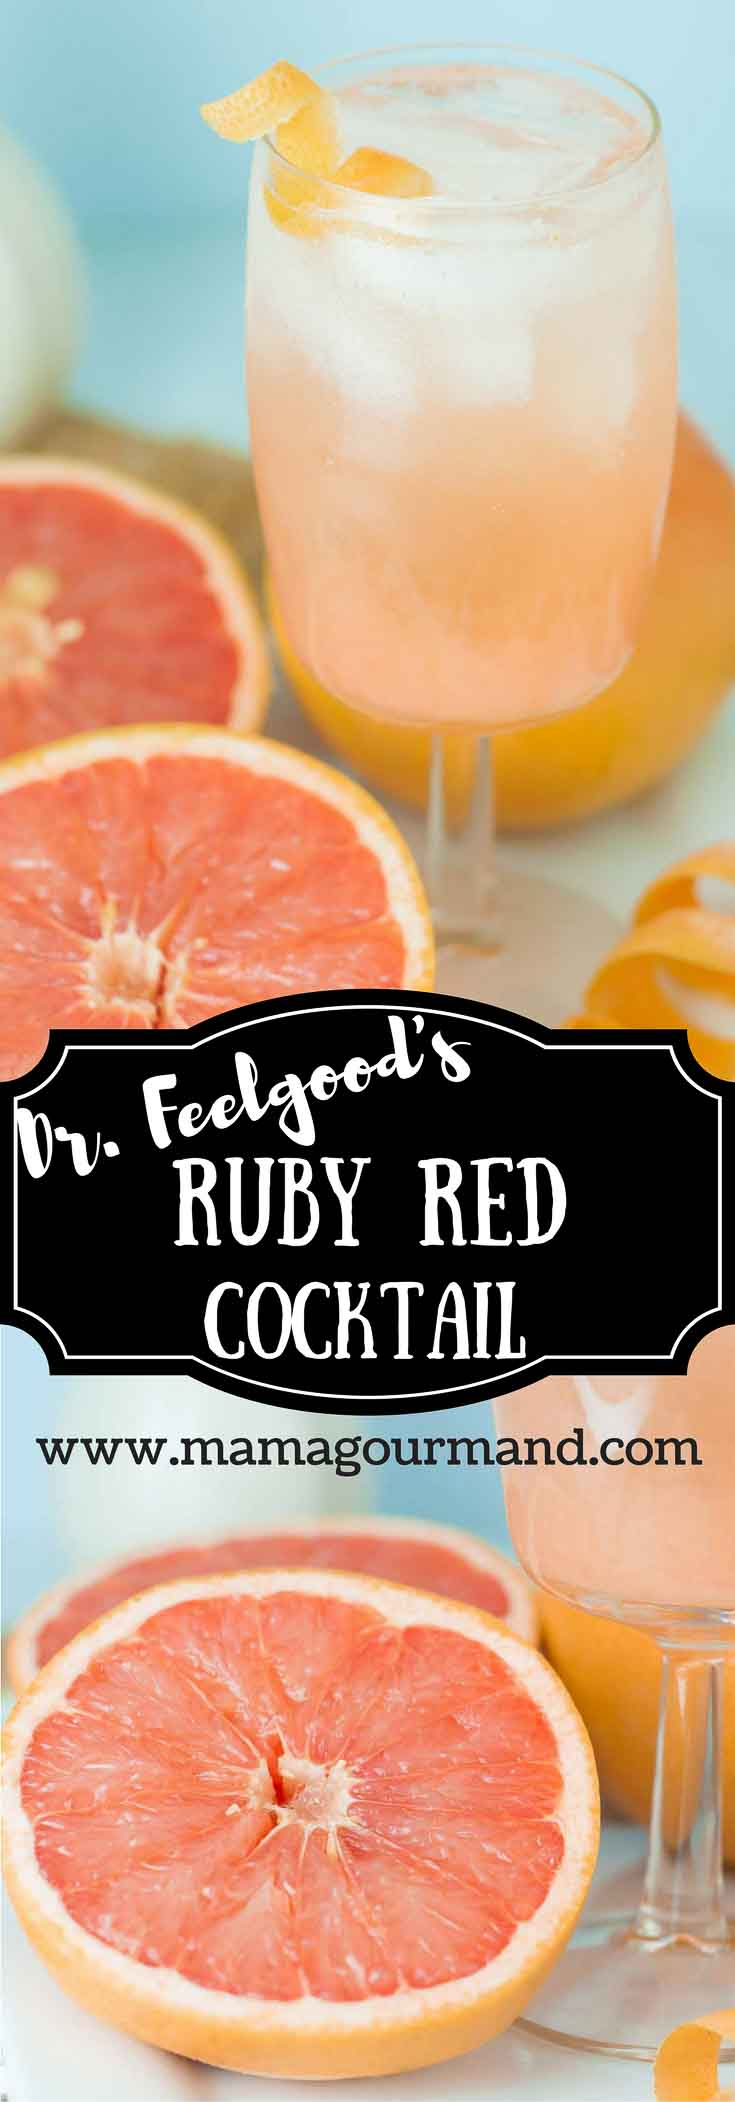 Dr. Feelgood's Grapefruit Cocktail combines fresh ruby red grapefruit juice, tangy grapefruit vodka, and sparkling ginger ale. https://www.mamagourmand.com